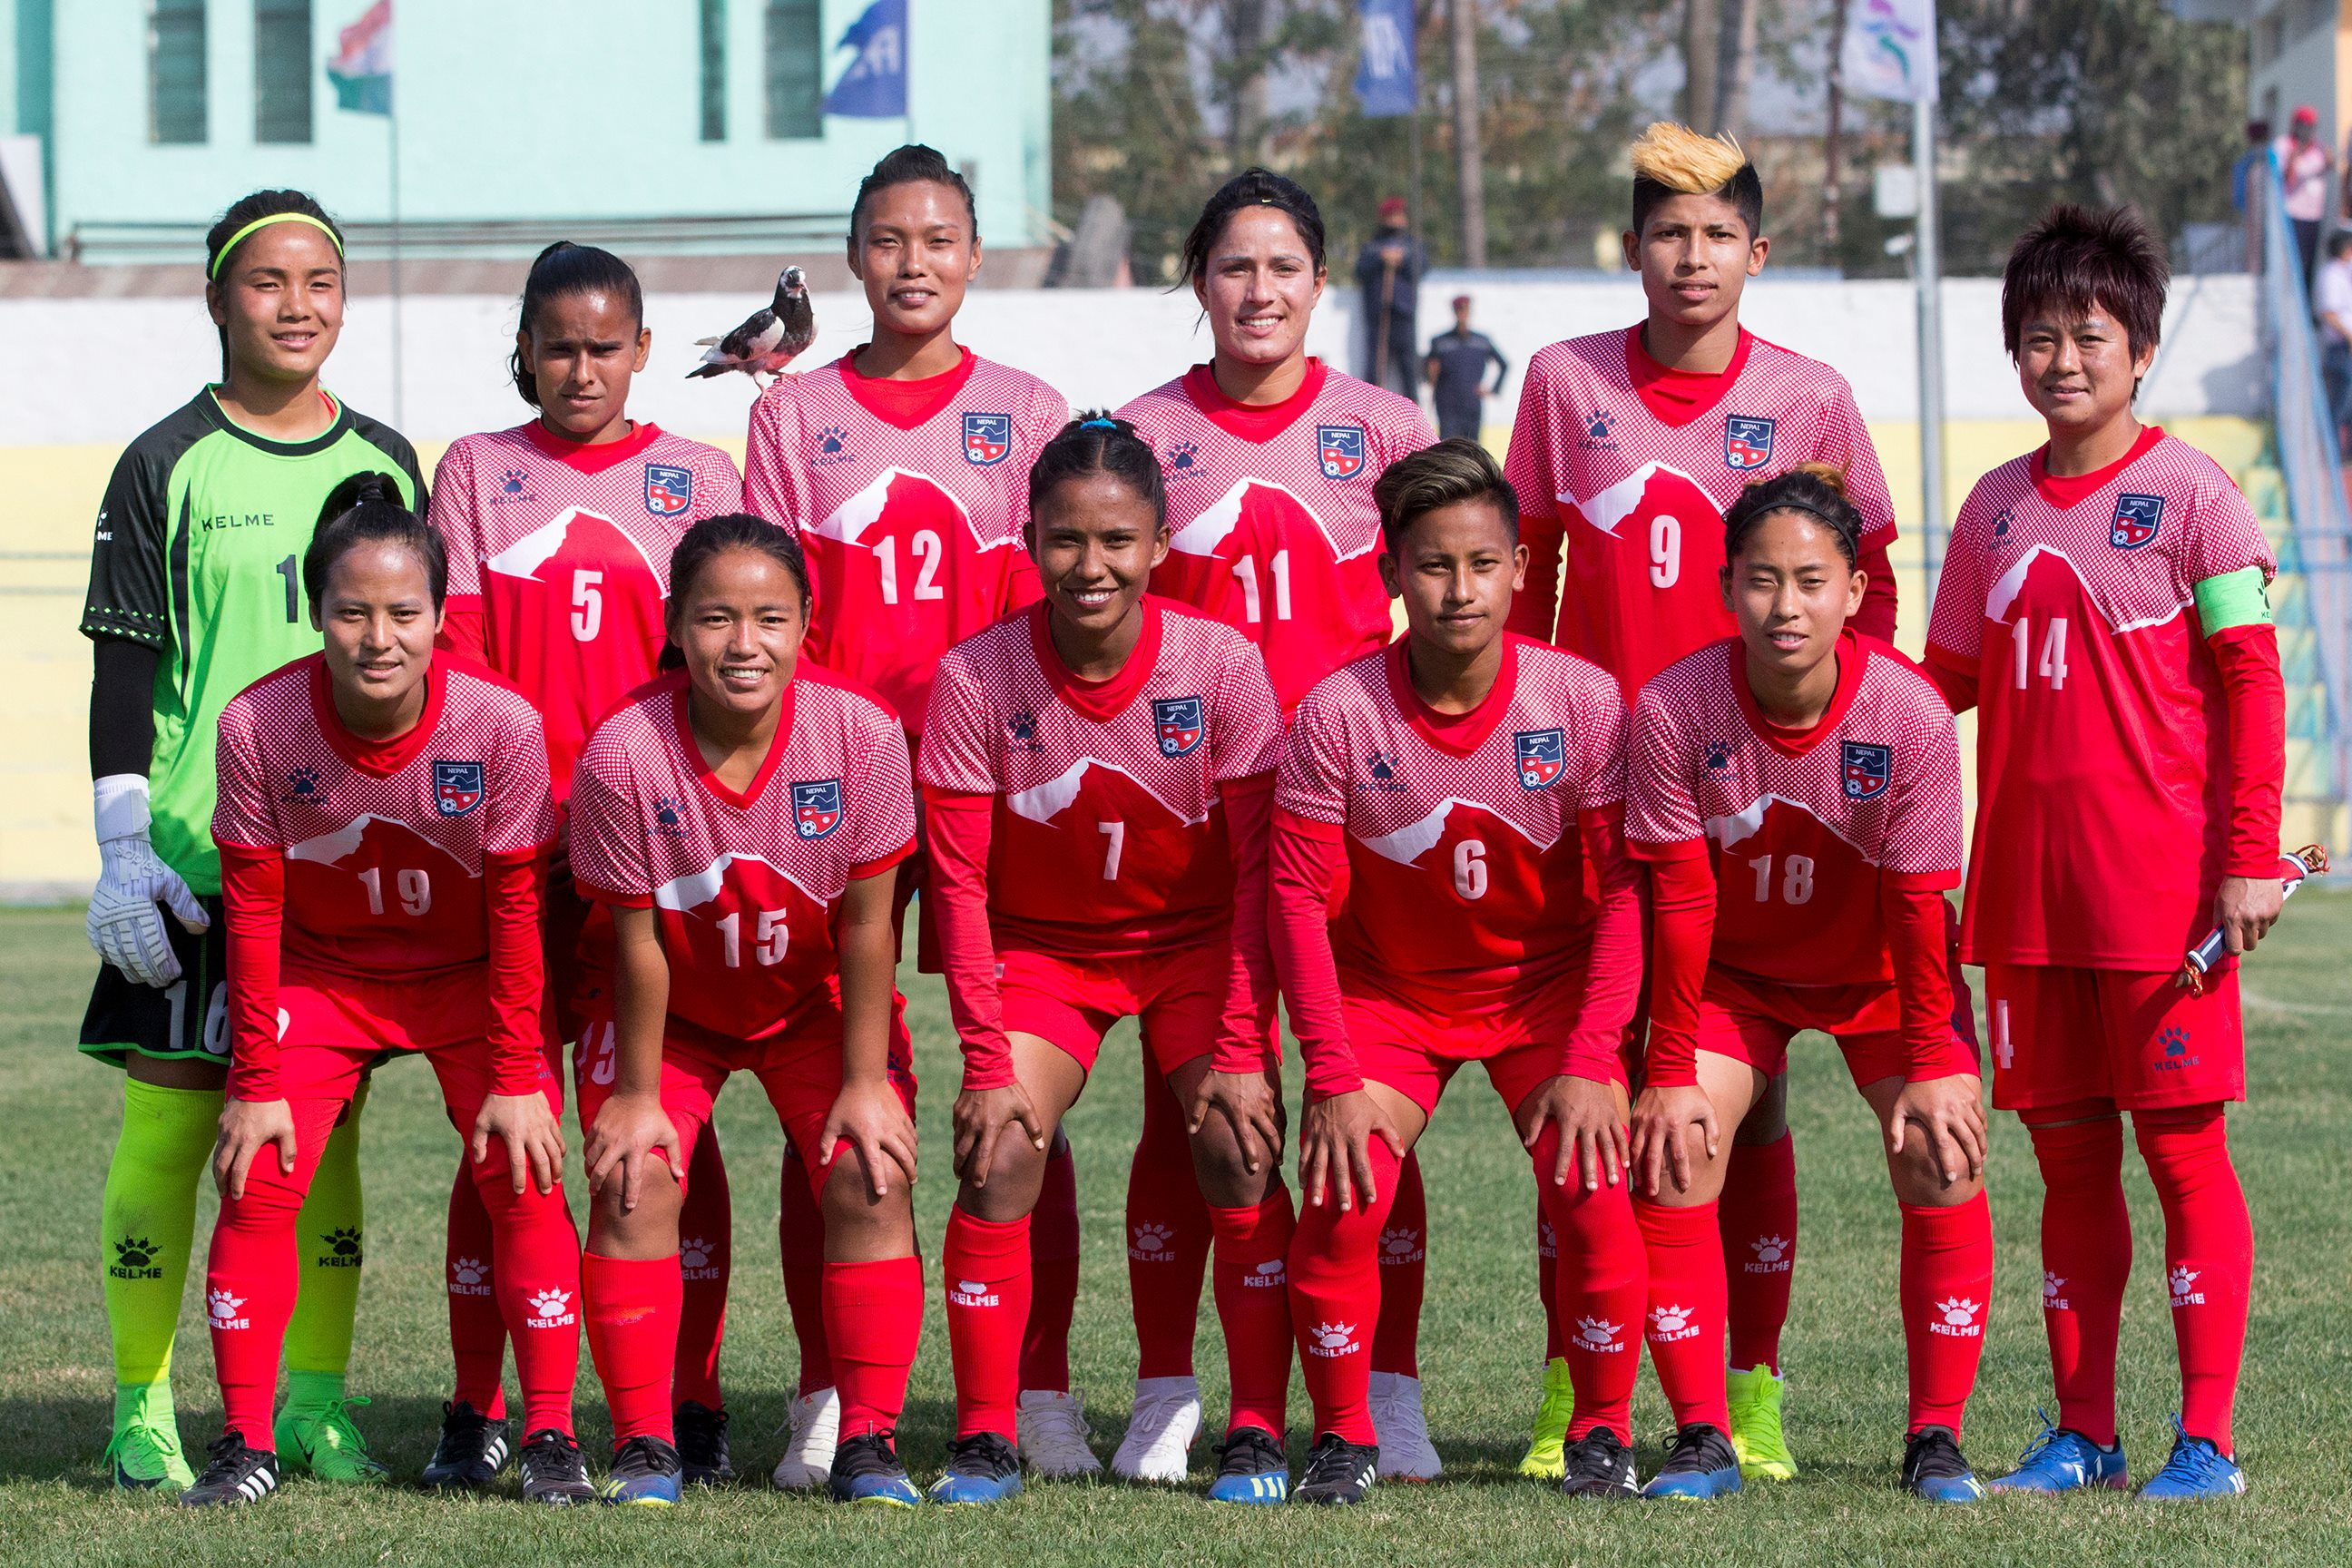 ANFA announces Rs 100,000 prize to women SAFF football players